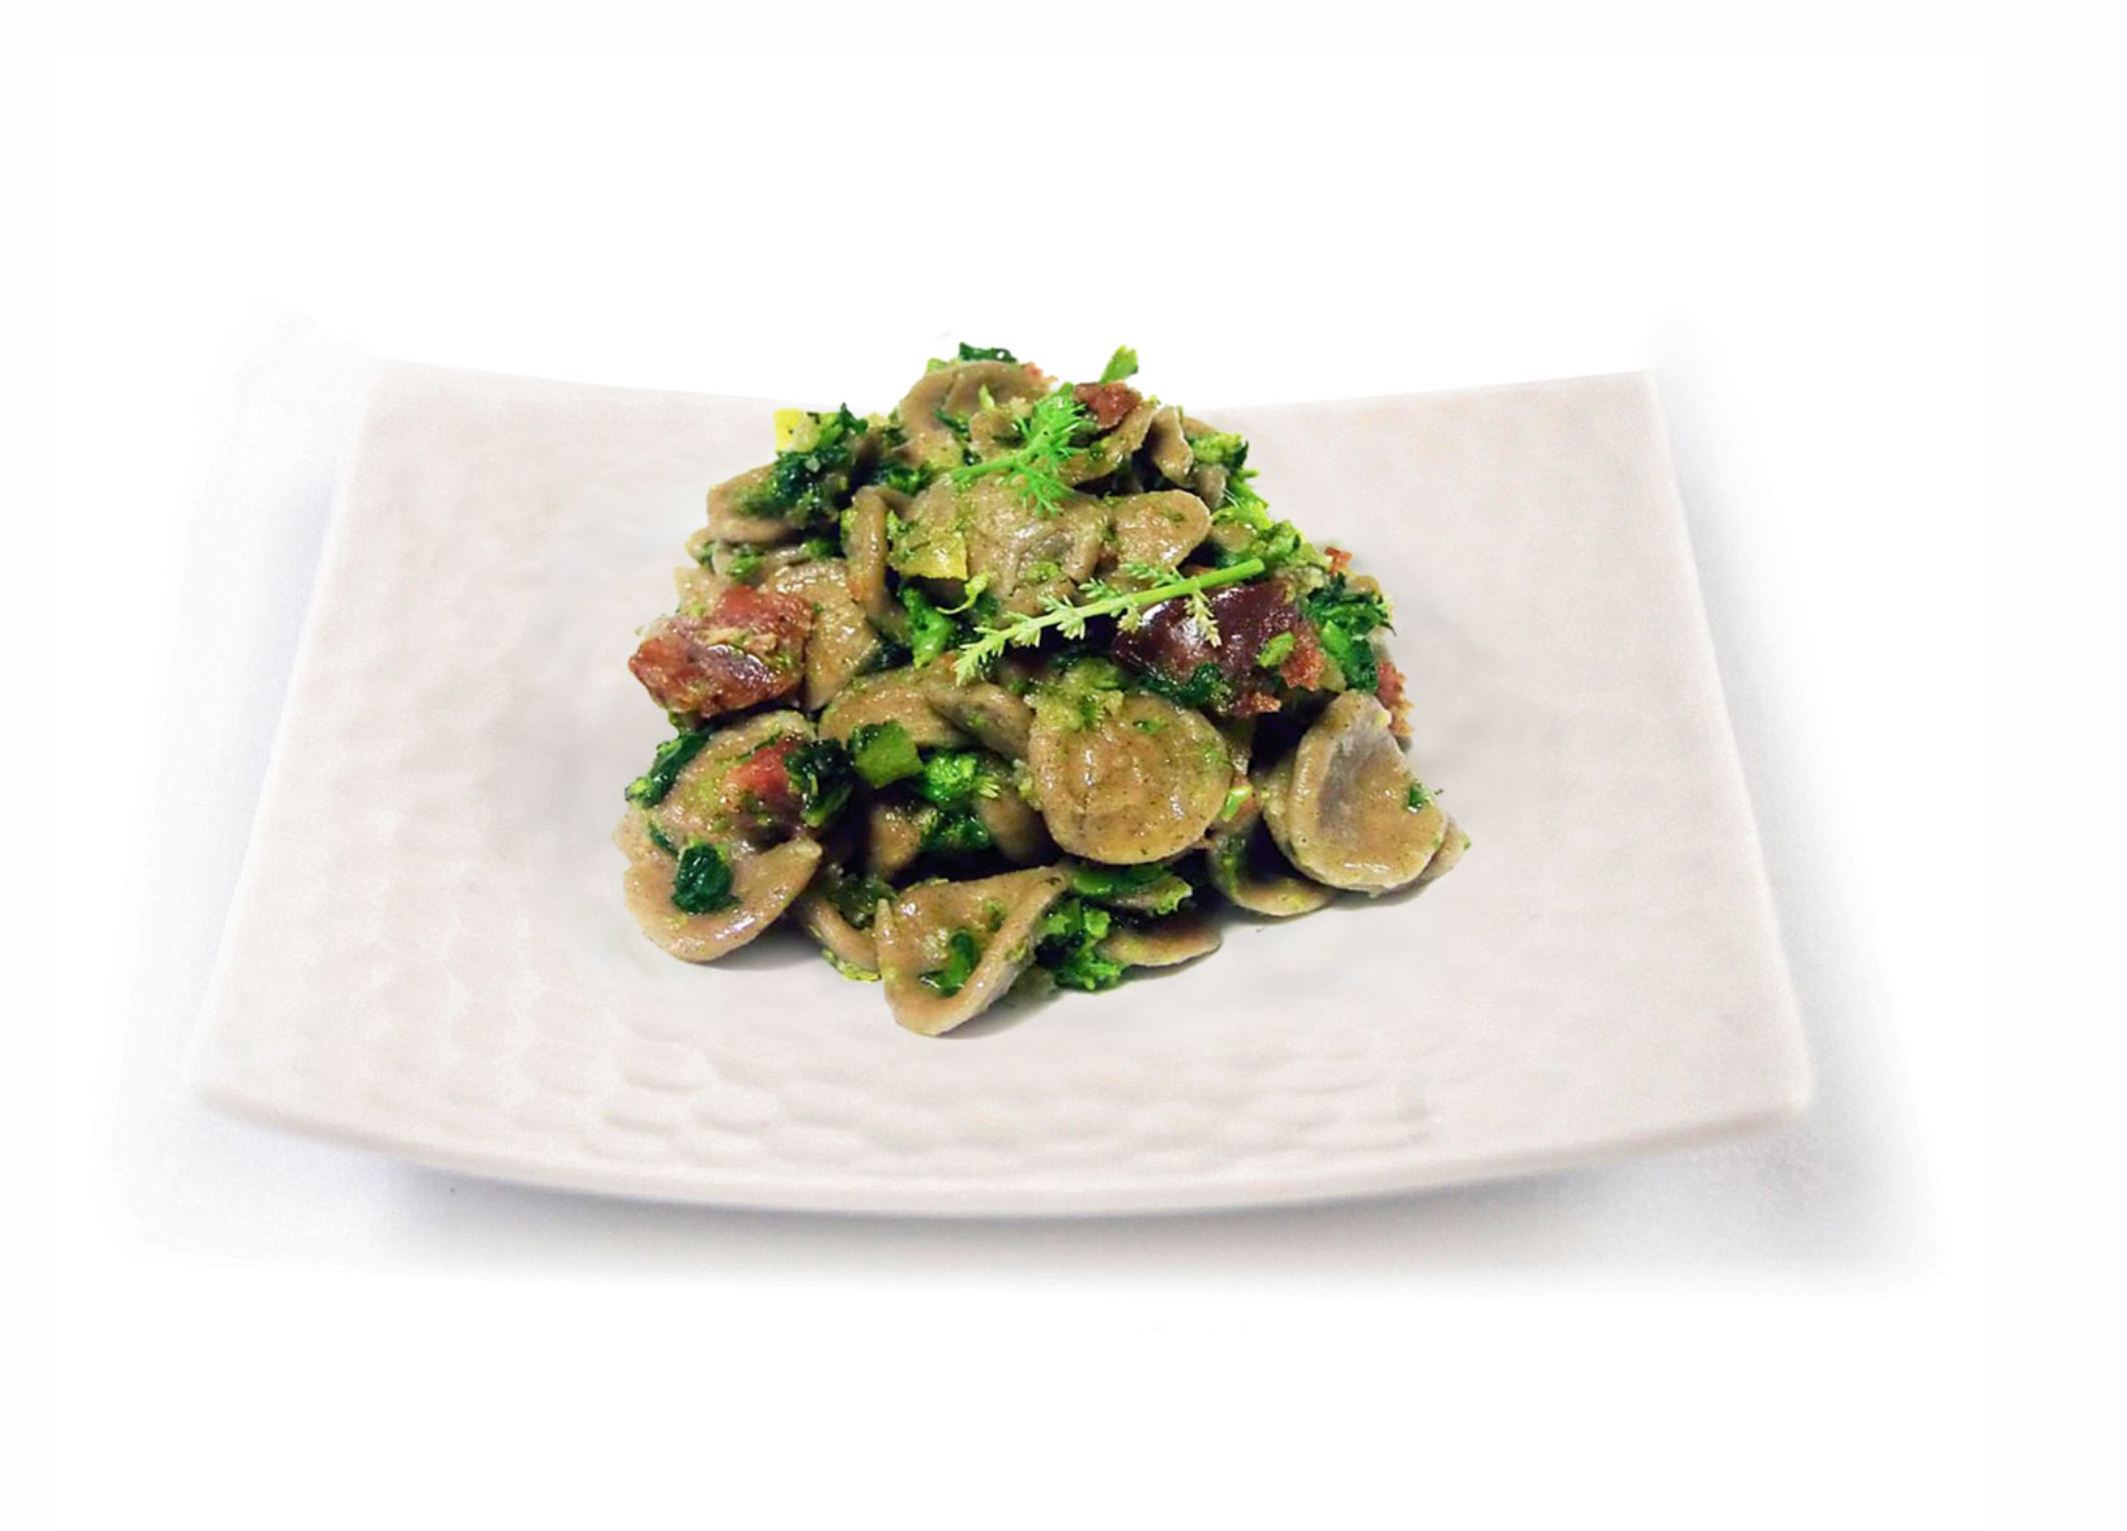 Toasted wheat orecchiette